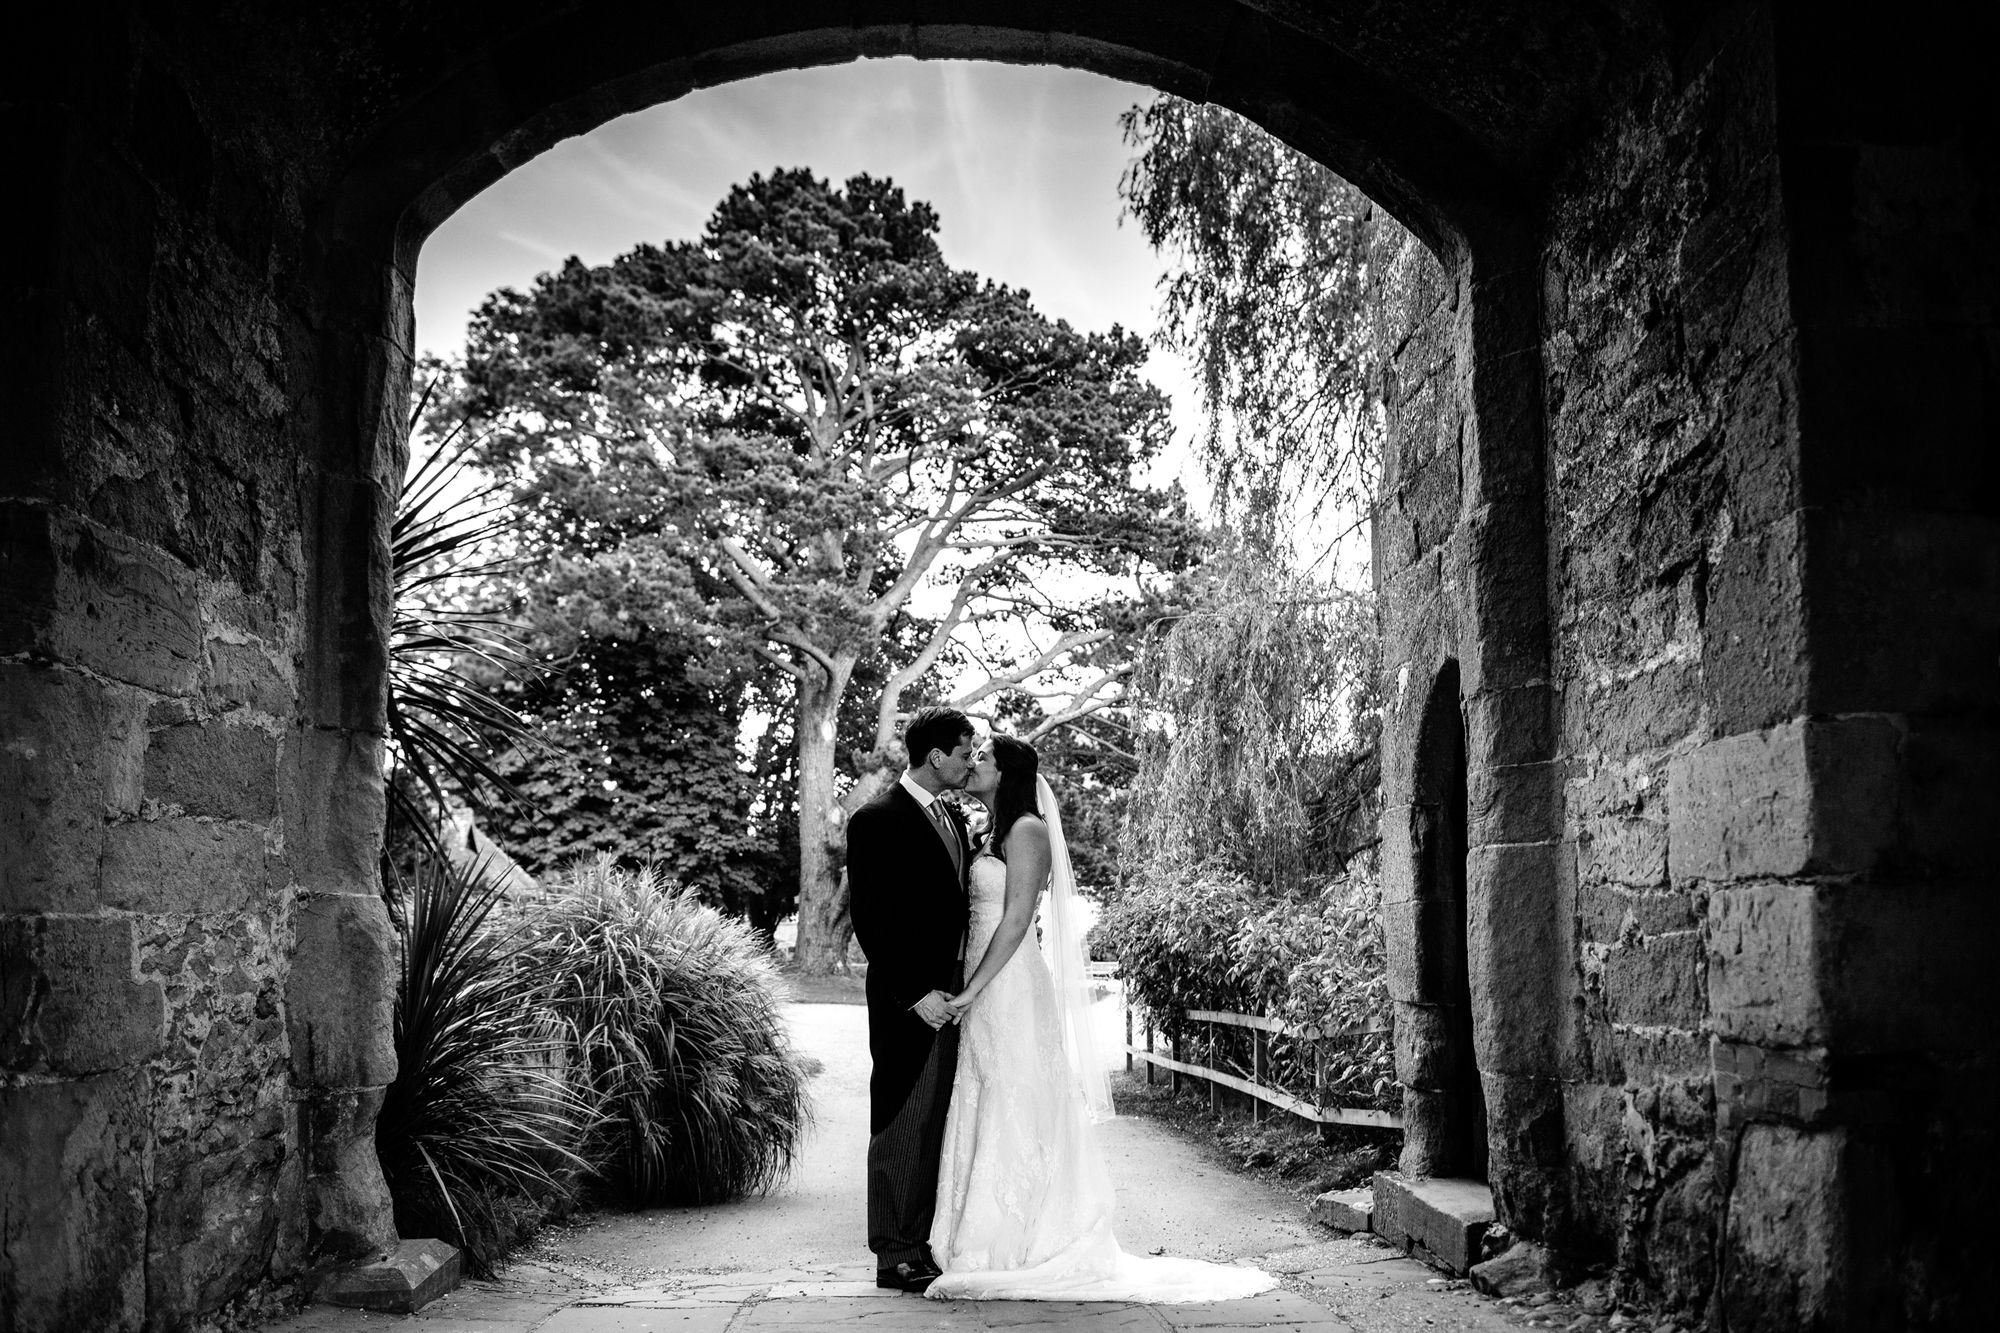 Sarah Williams Photography - Wedding Photographer in Wiltshire - Love That